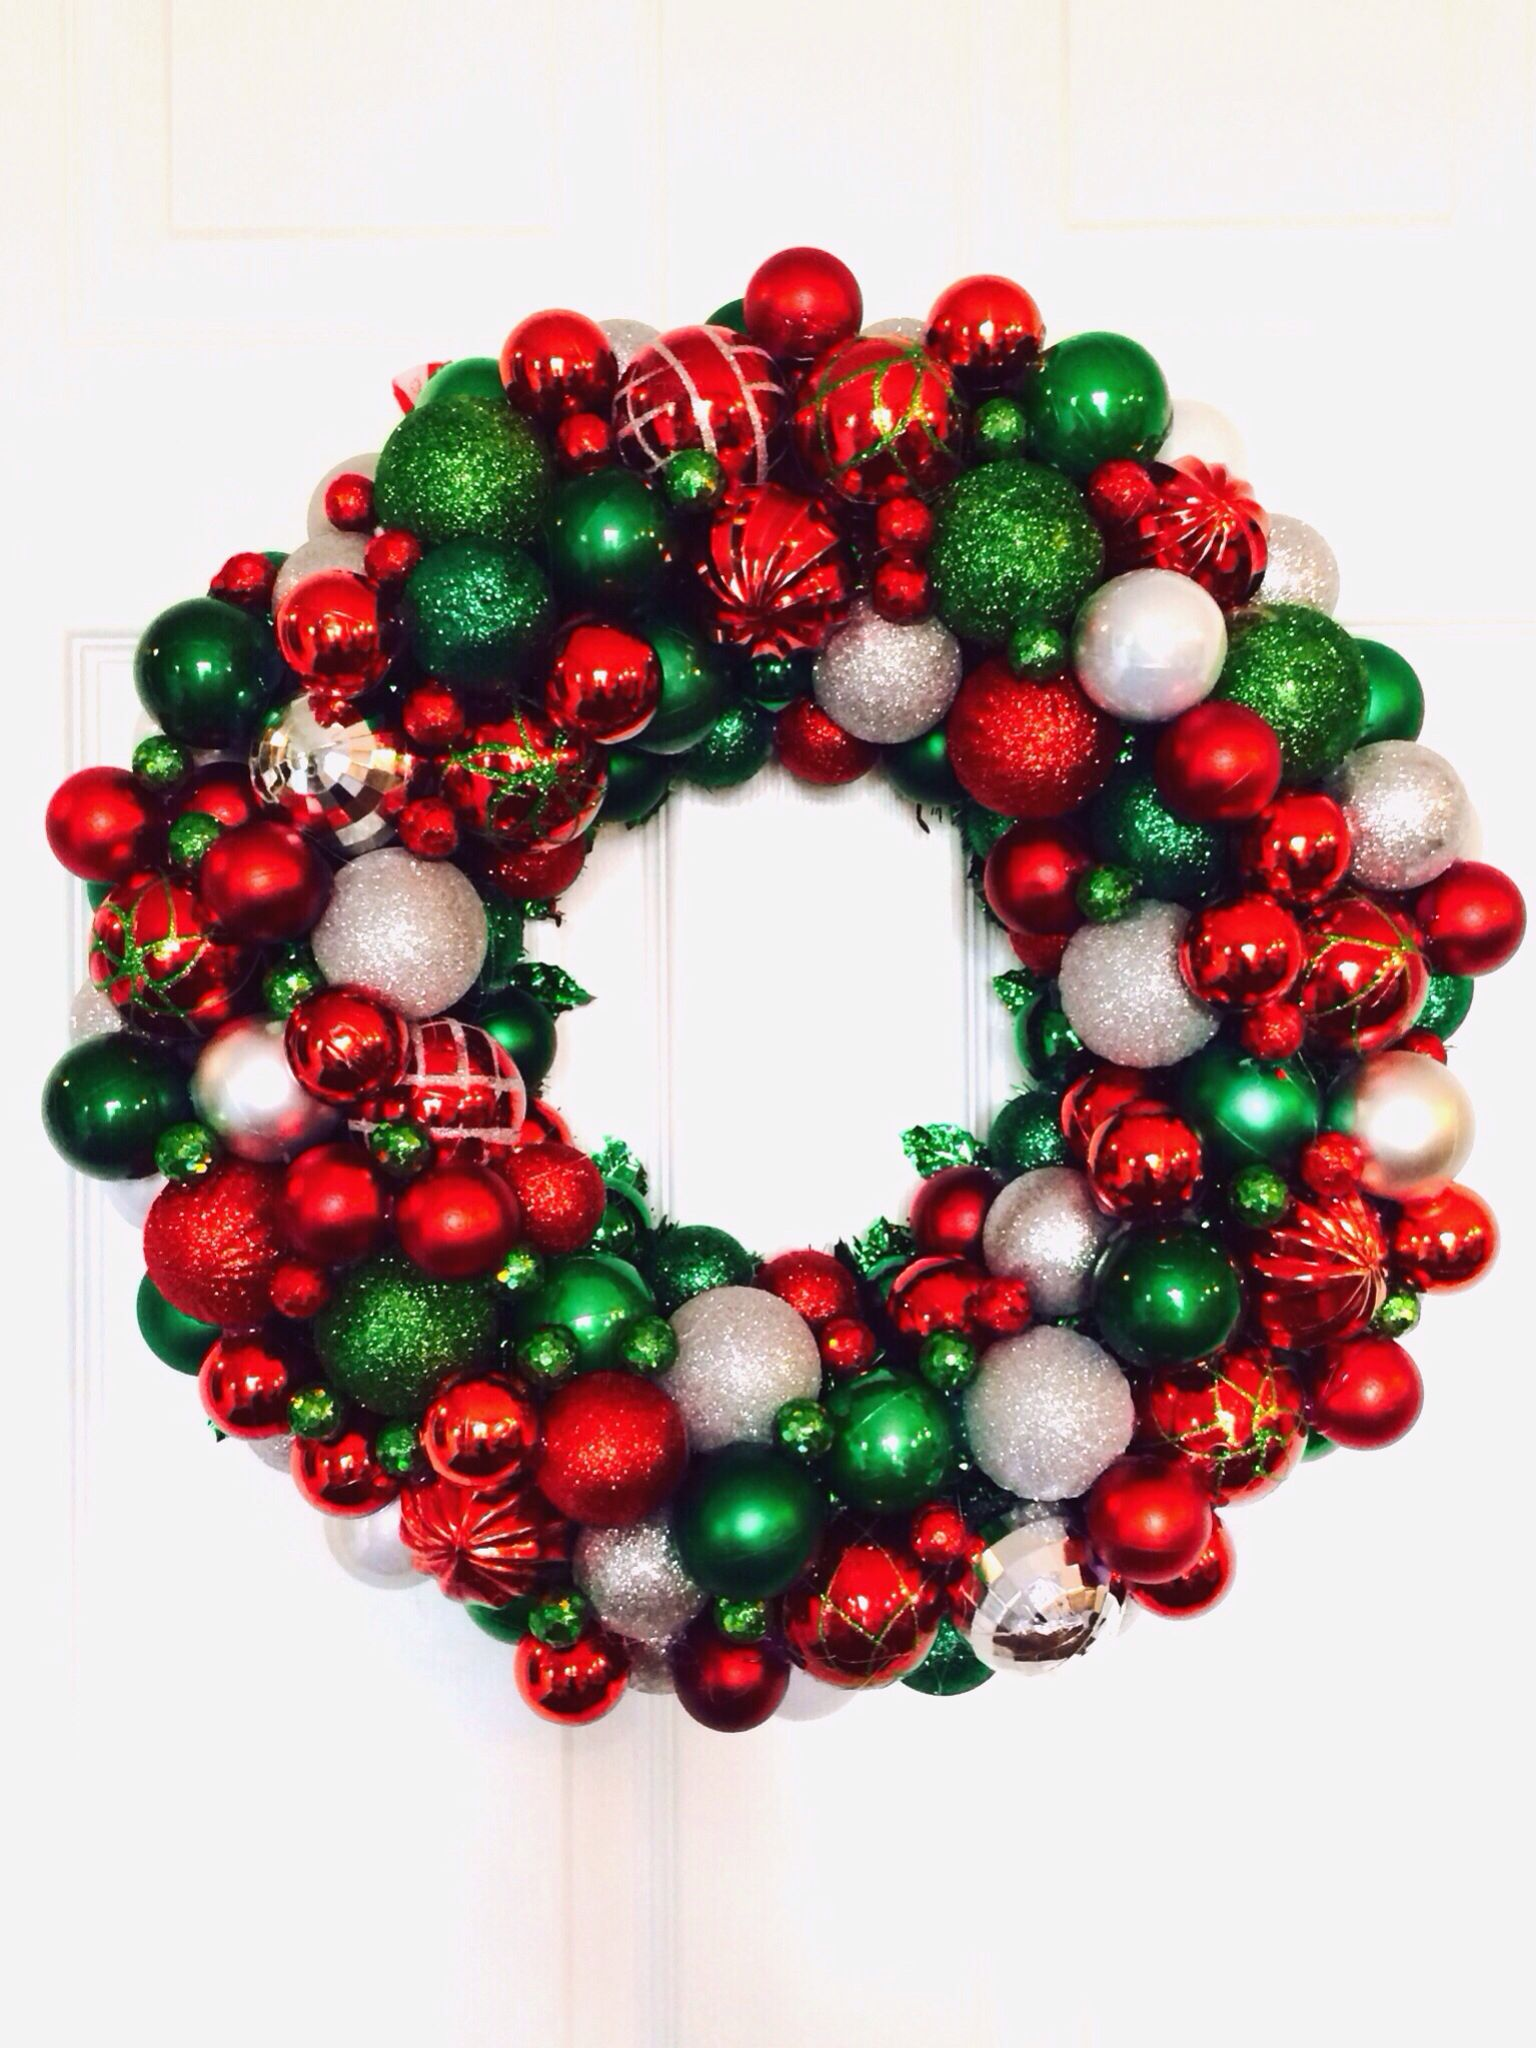 Homemade Christmas Ornament Wreath Red Green Silver Christmas Wreaths Diy Christmas Ornaments Homemade Christmas Wreaths